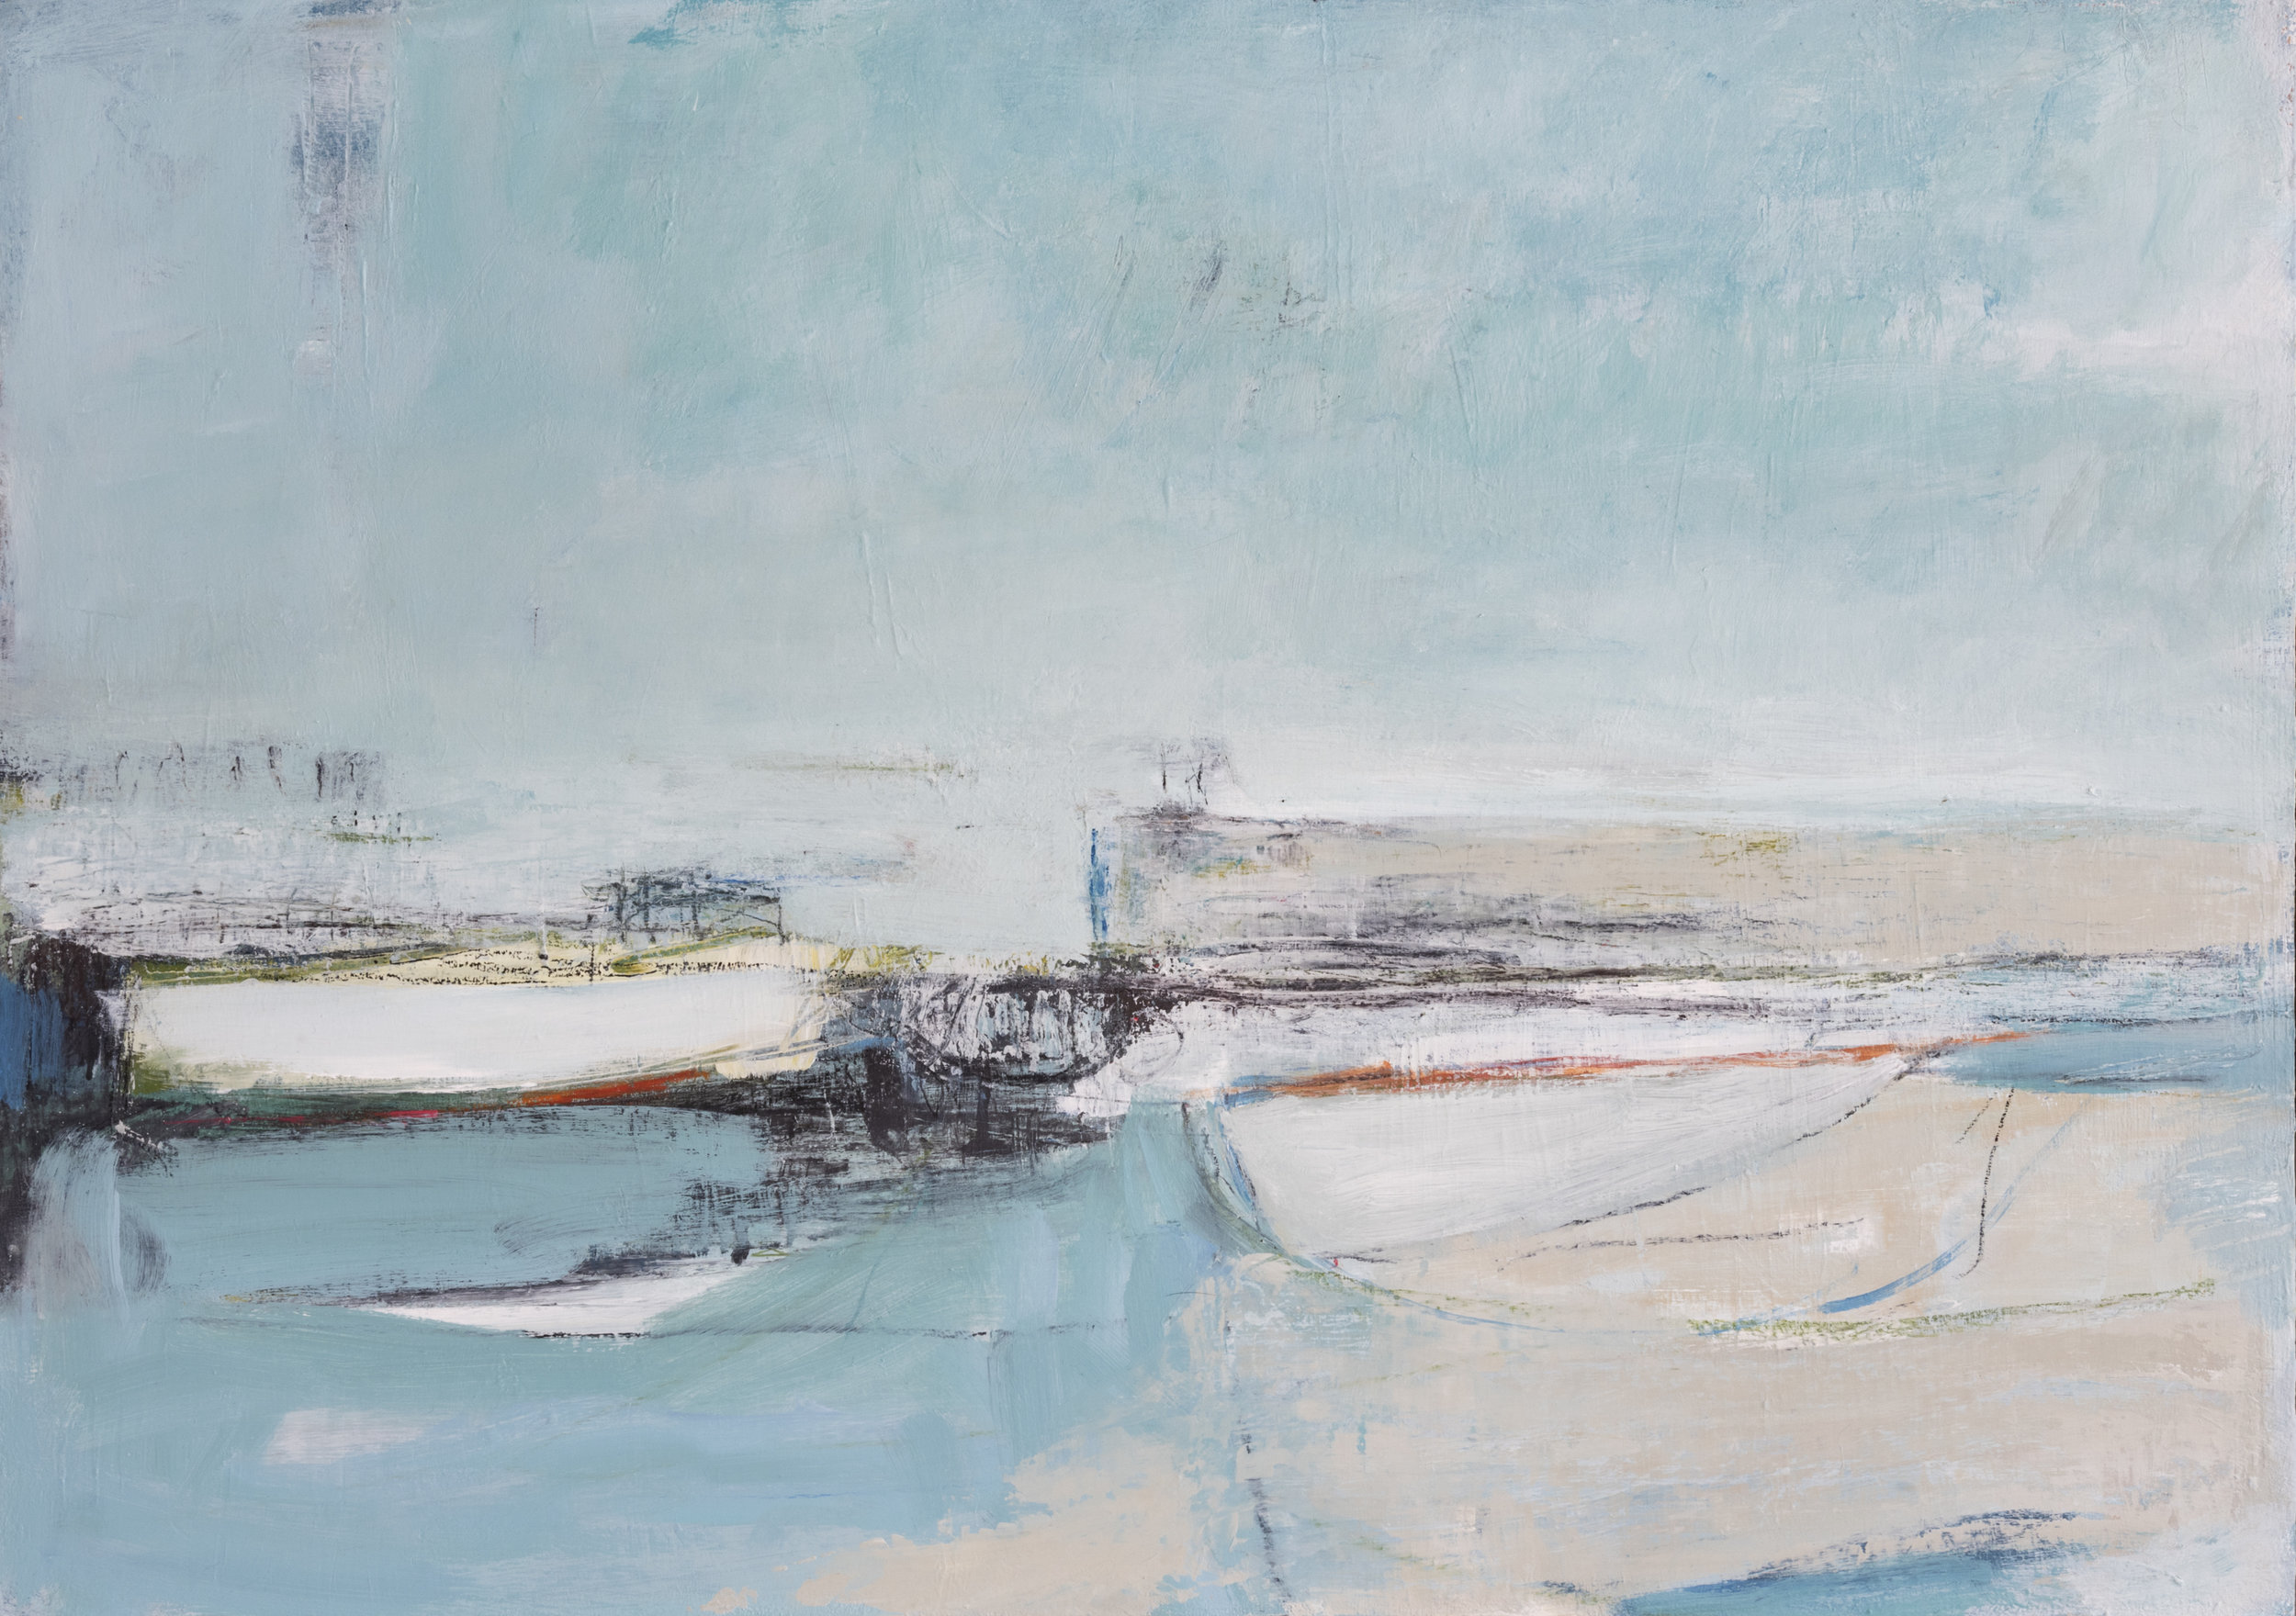 On this Watery Shore  (2018–2019) | Mixed media on panel, 84cm x 60cm, £800